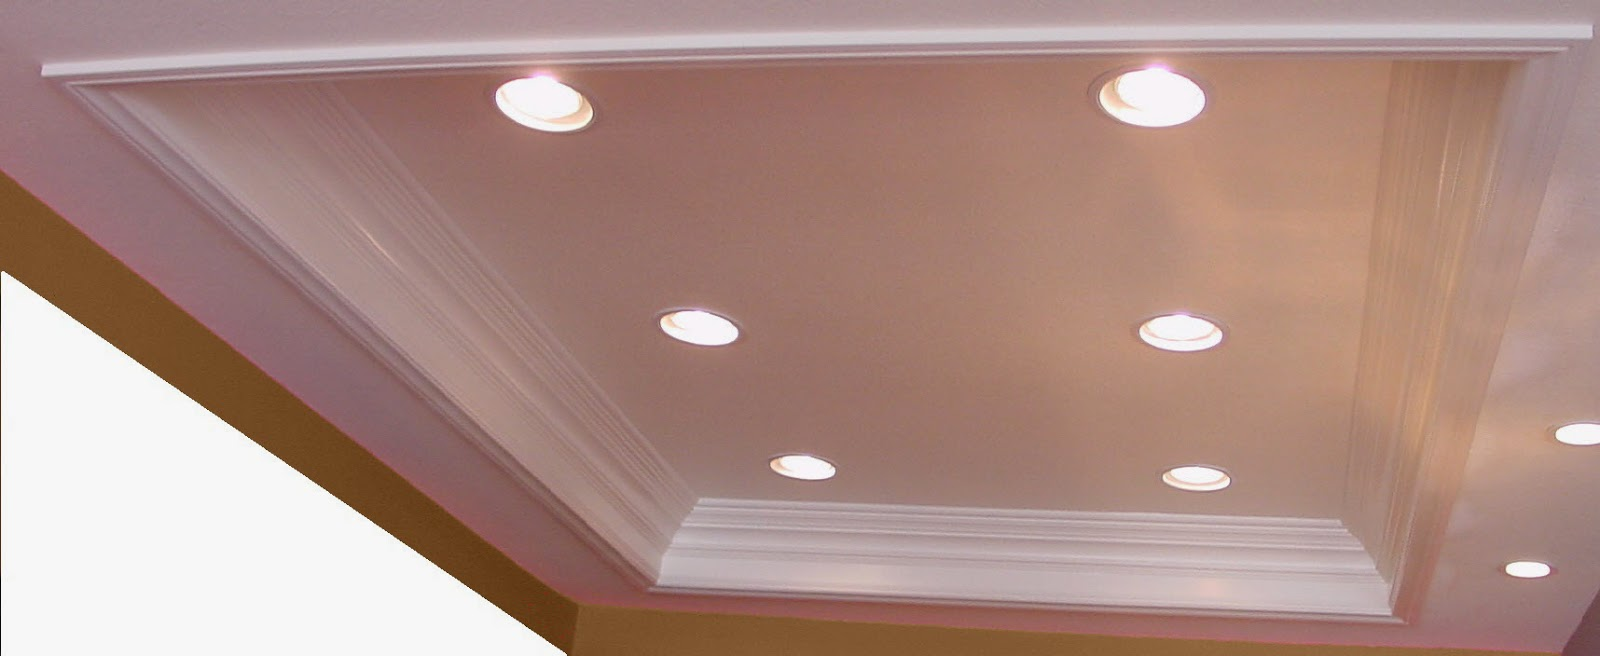 Recessed Lighting Guide : Recessed lighting layout